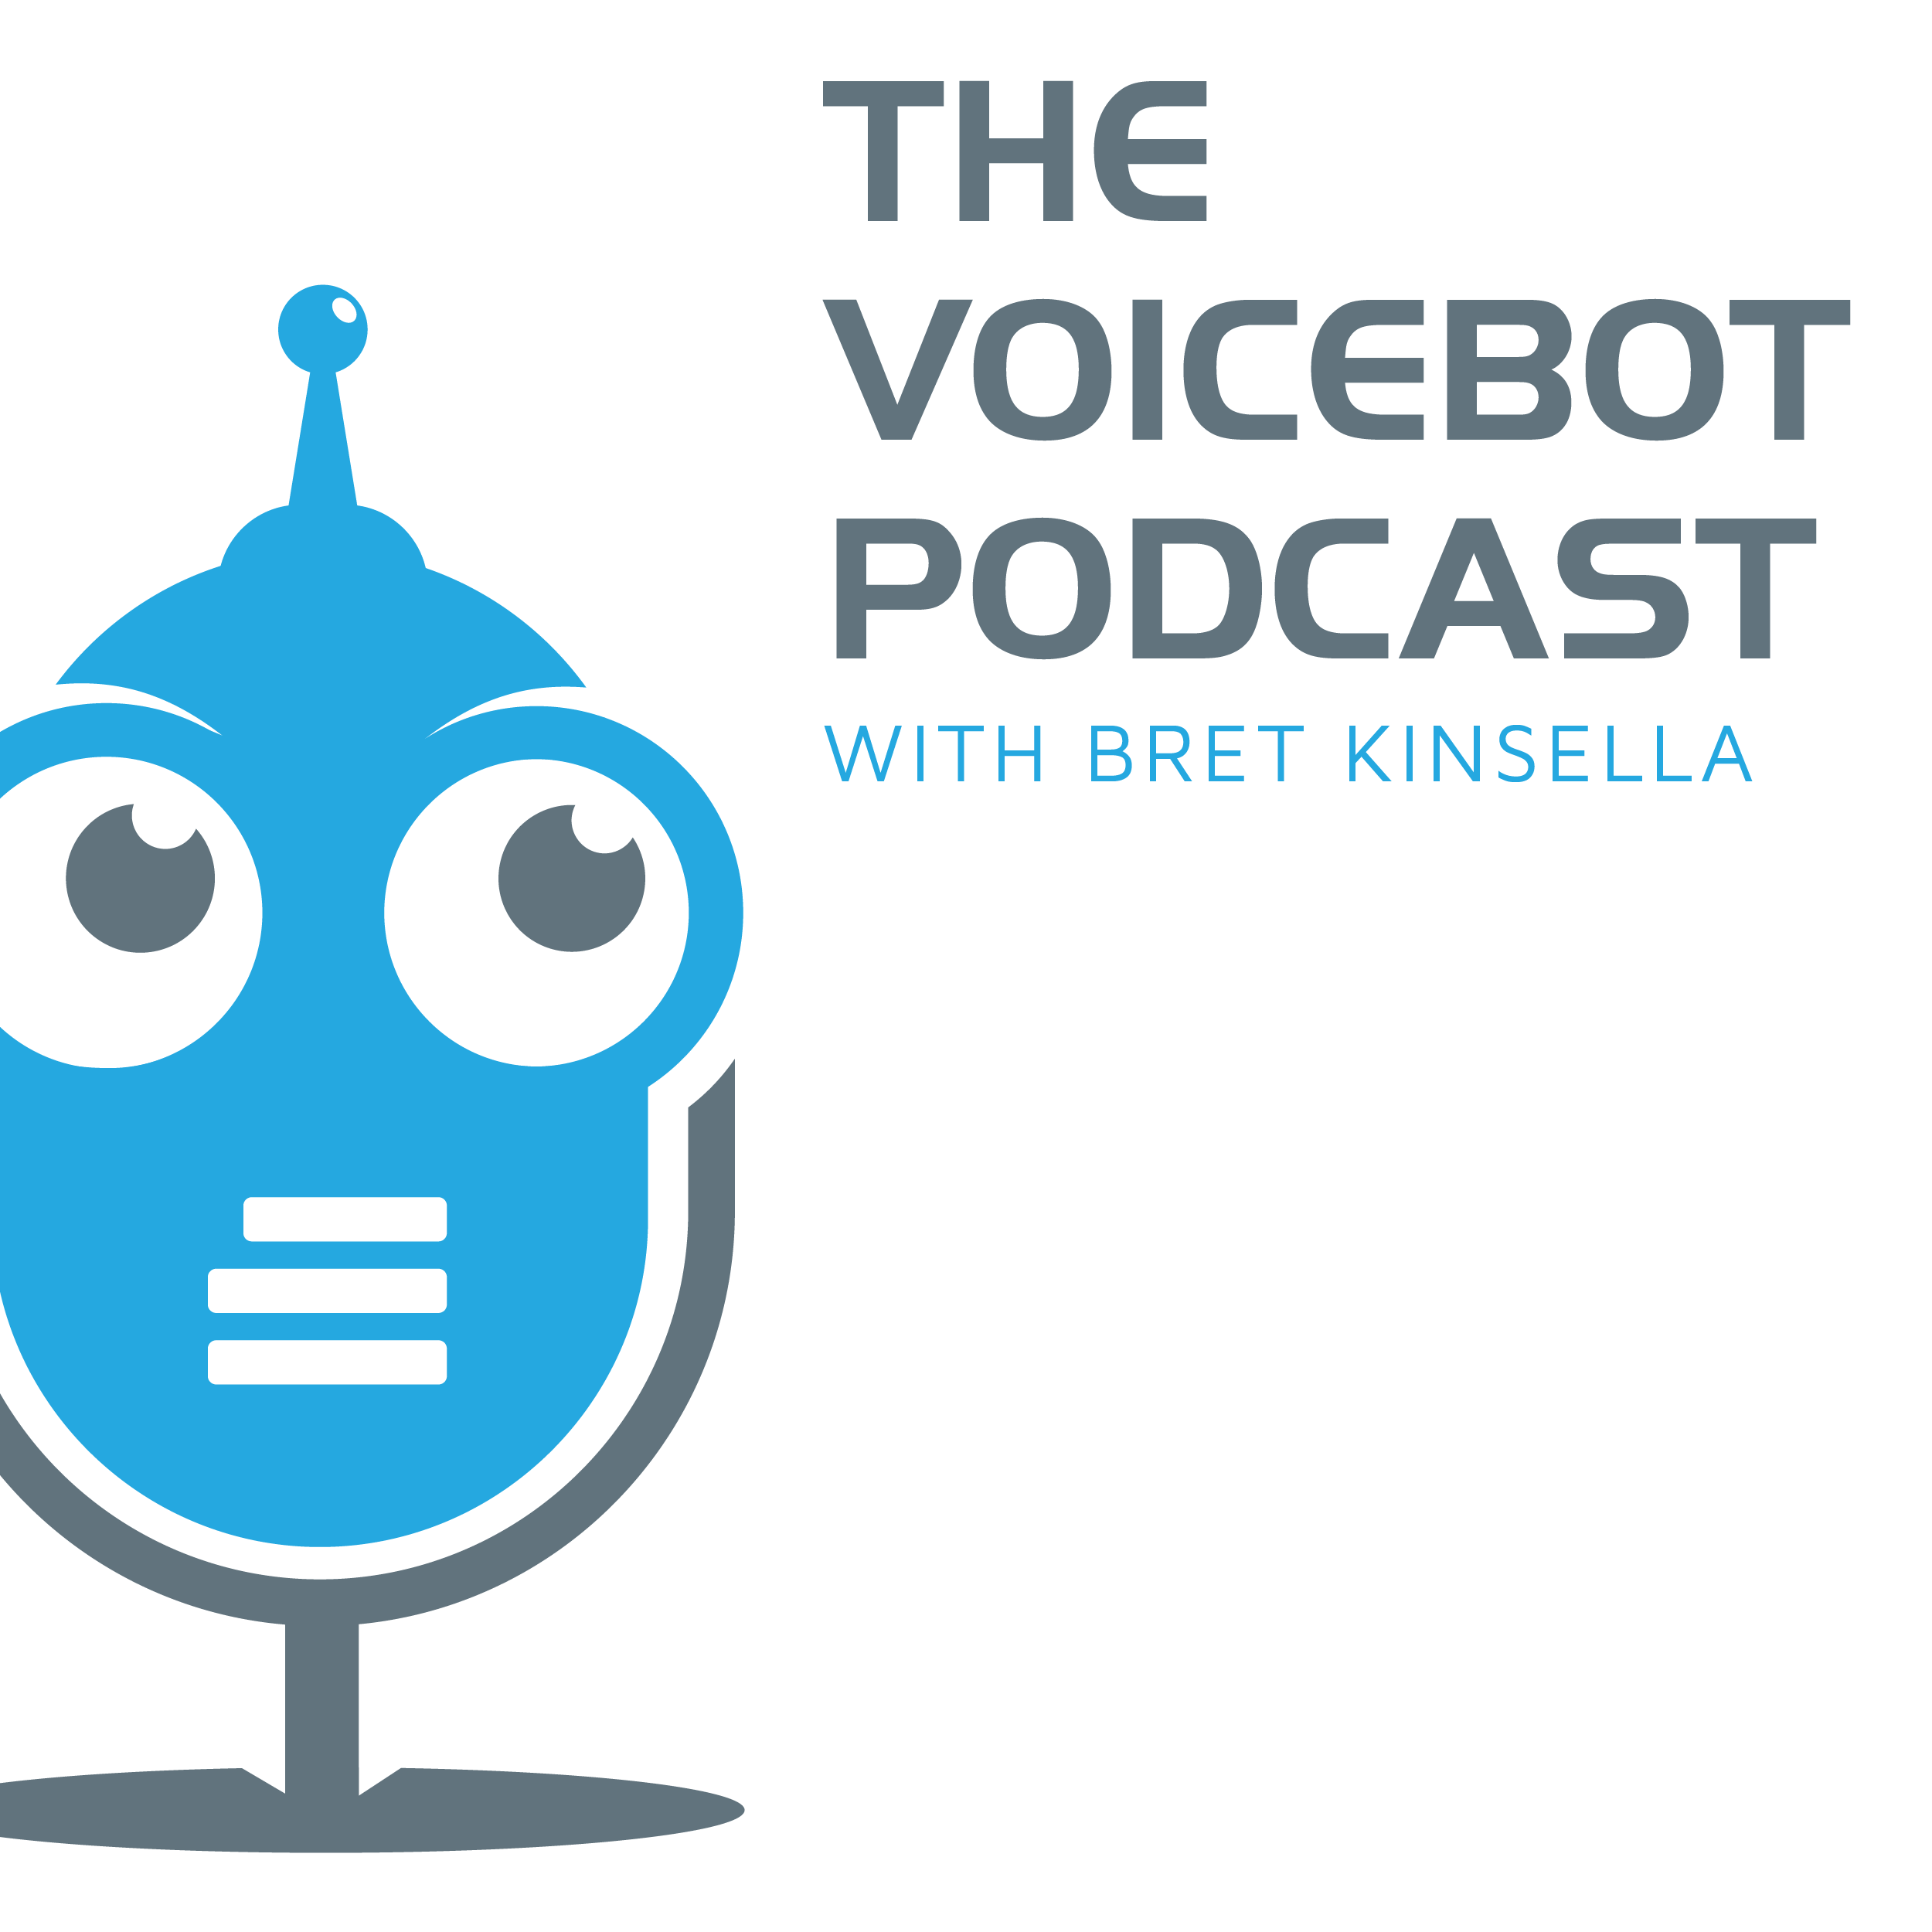 The Voicebot Podcast